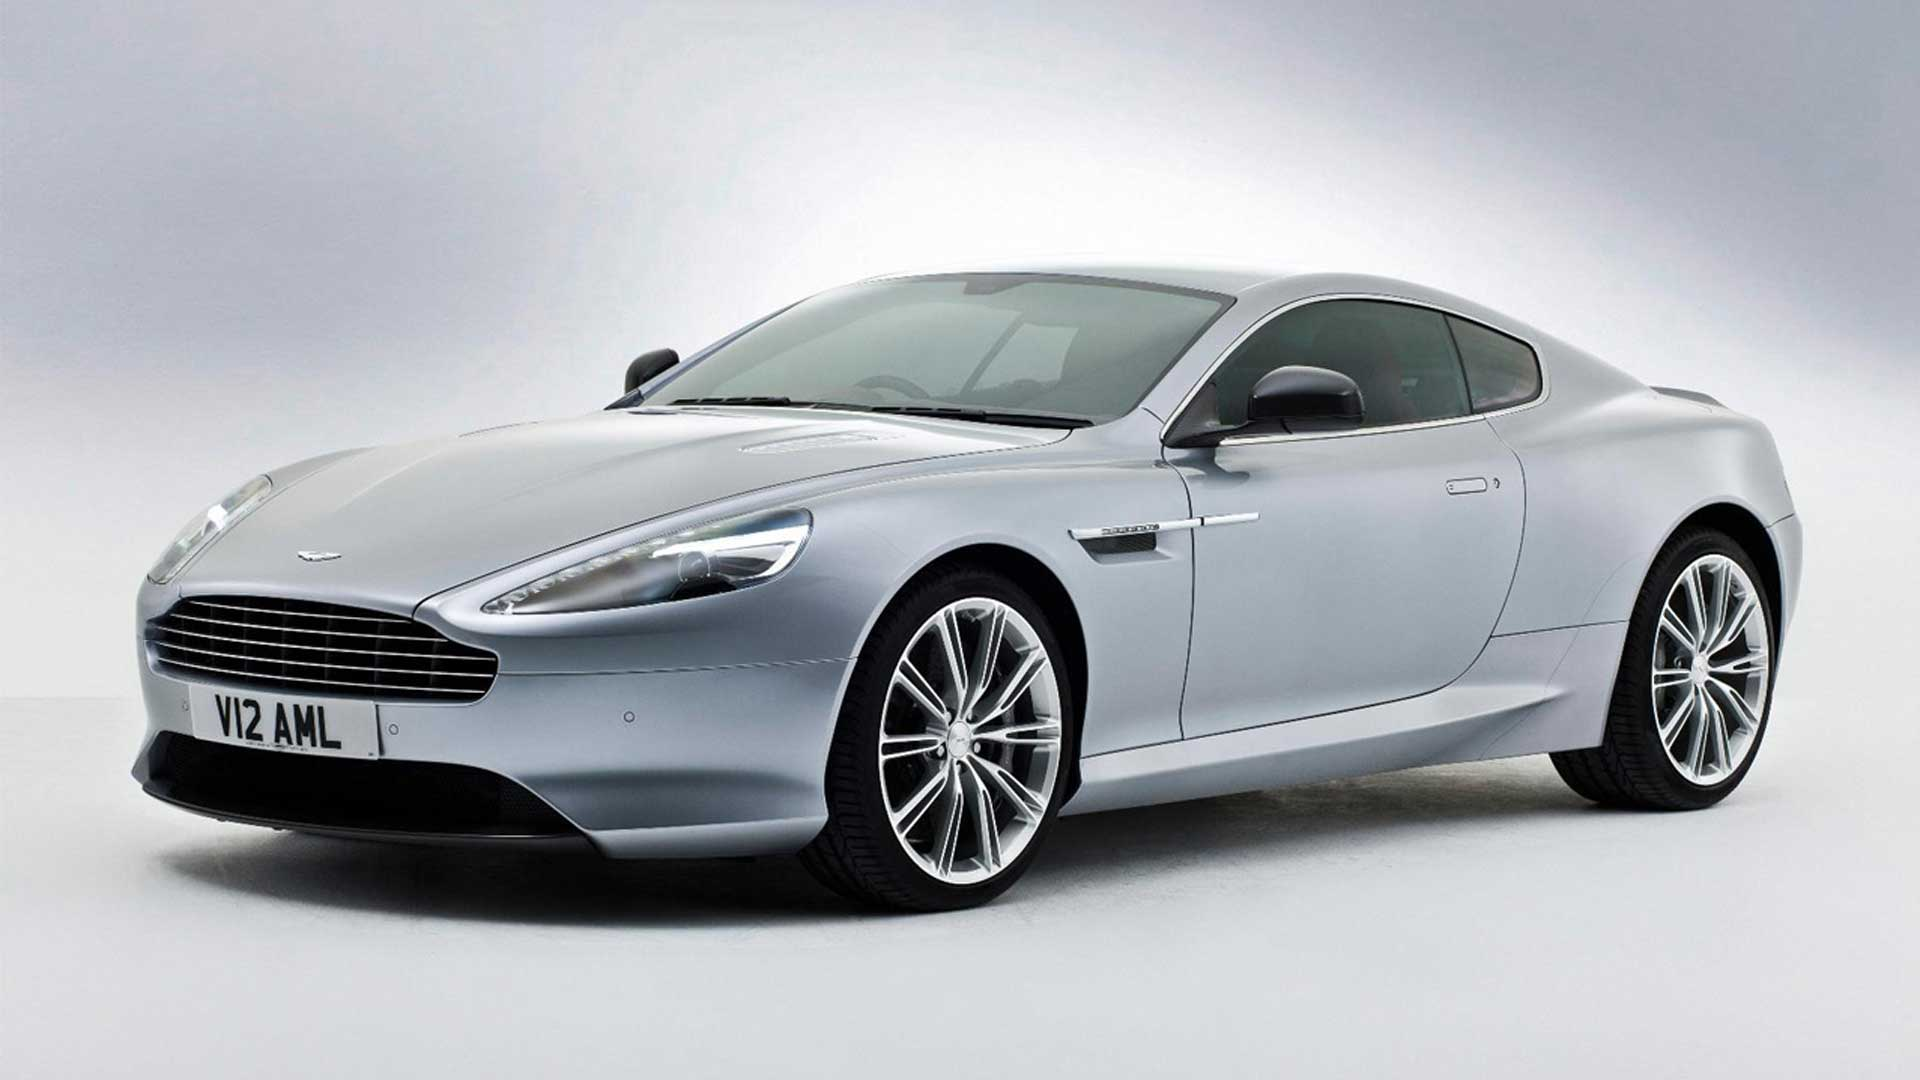 Get aston martin db9 HD wallpaper wallpaper for desktop iphone android 1920x1080